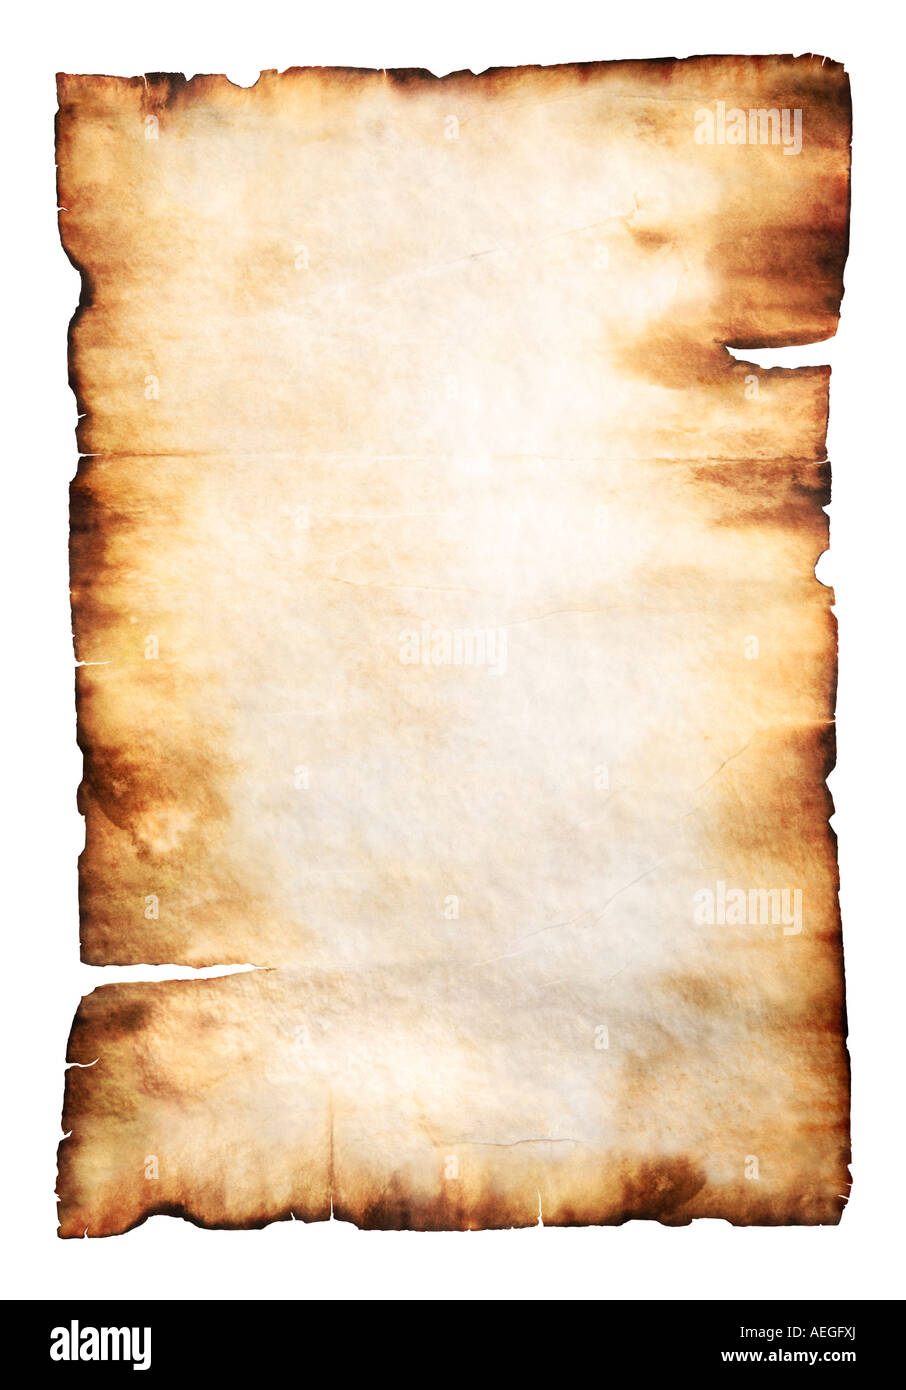 vintage yellowish parchment paper with burnt edges stock photo 13678313 alamy. Black Bedroom Furniture Sets. Home Design Ideas